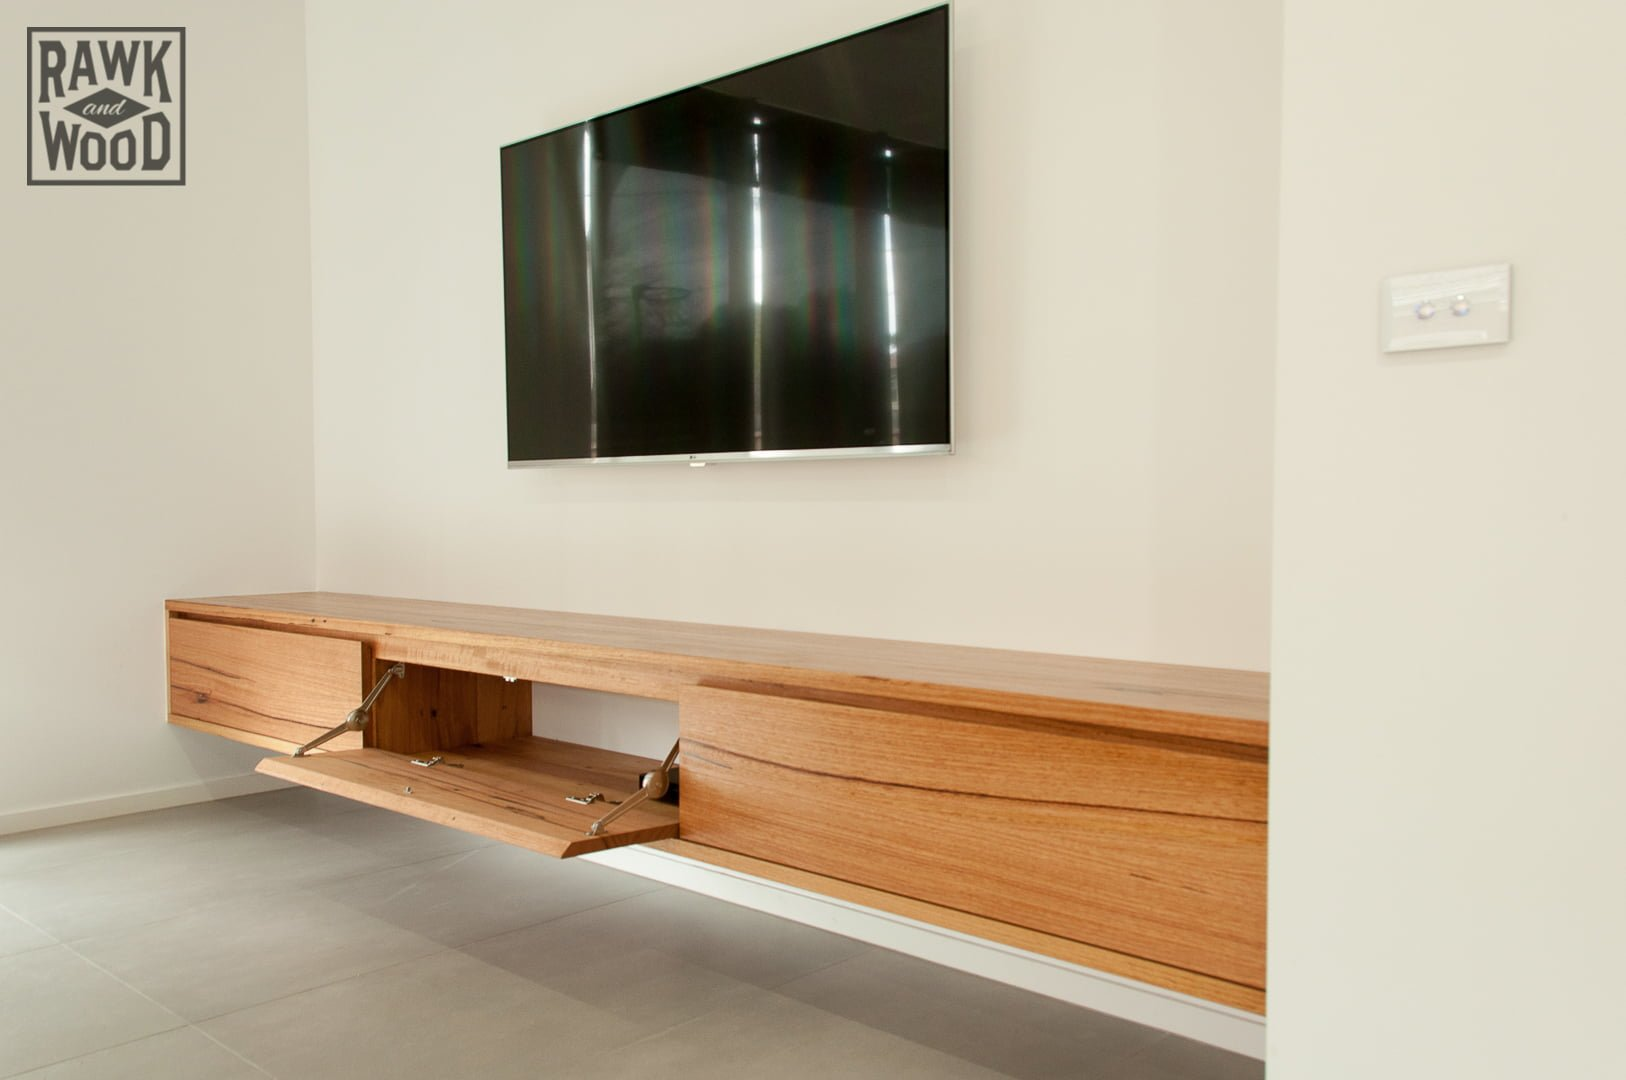 Recycled-Timber-TV-Unit-02, made in Melbourne by Rawk and Wood